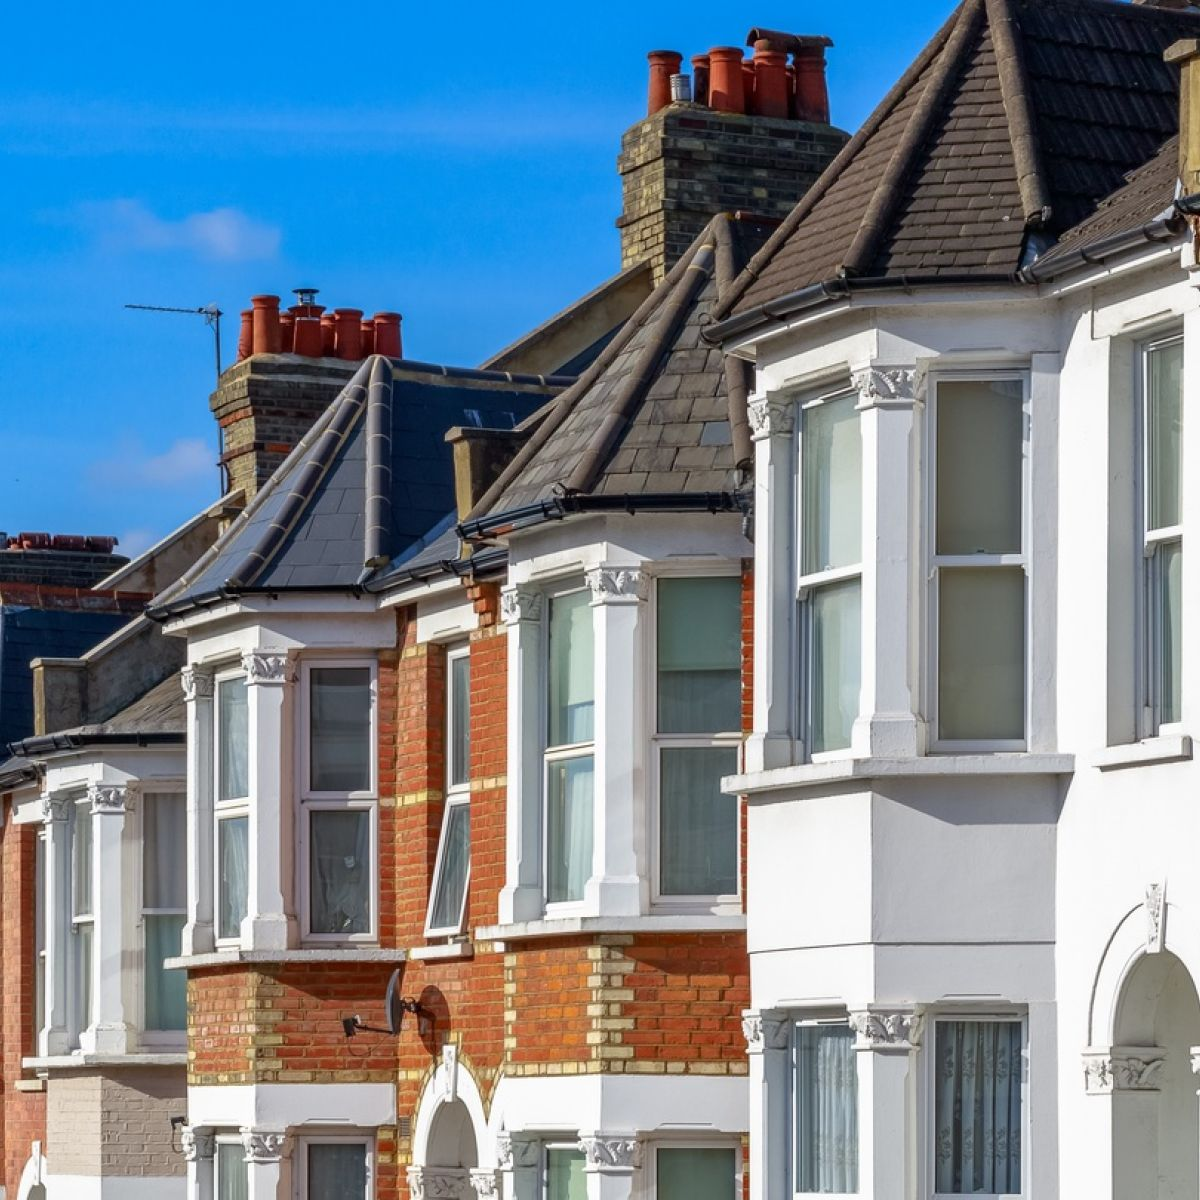 How to transfer a dwelling to non-residential premises: all the details of the case